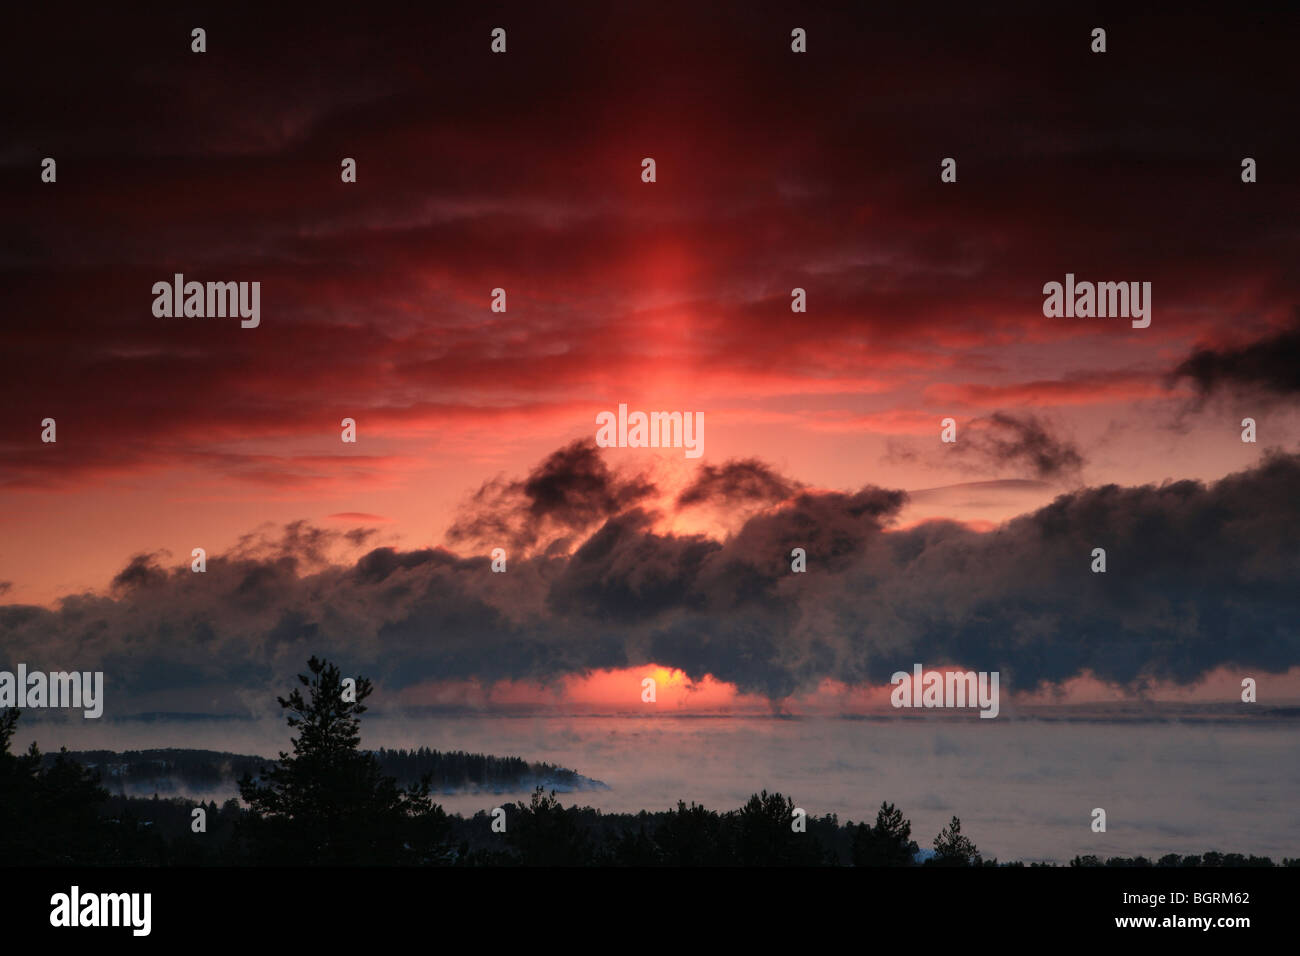 Beautiful godbeam at sunset over the Oslofjord, seen from the view point tower at Vardåsen in Rygge, Østfold, - Stock Image